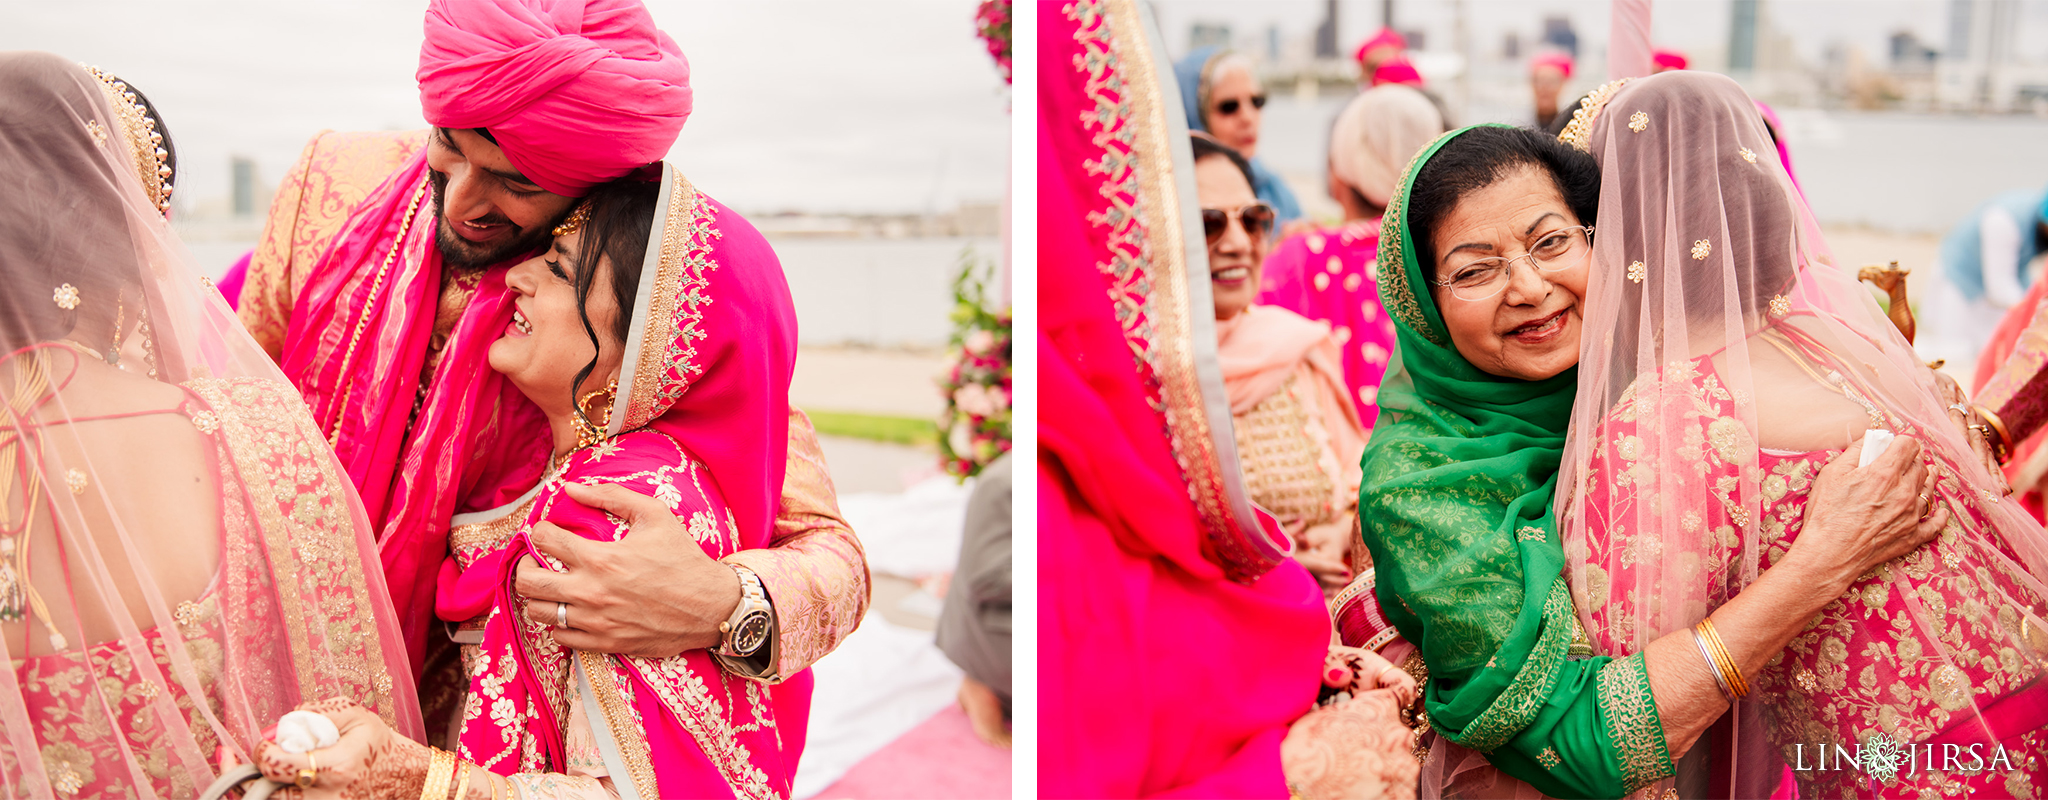 23 Coronado Resort and Spa San Diego Punjabi Wedding Photography